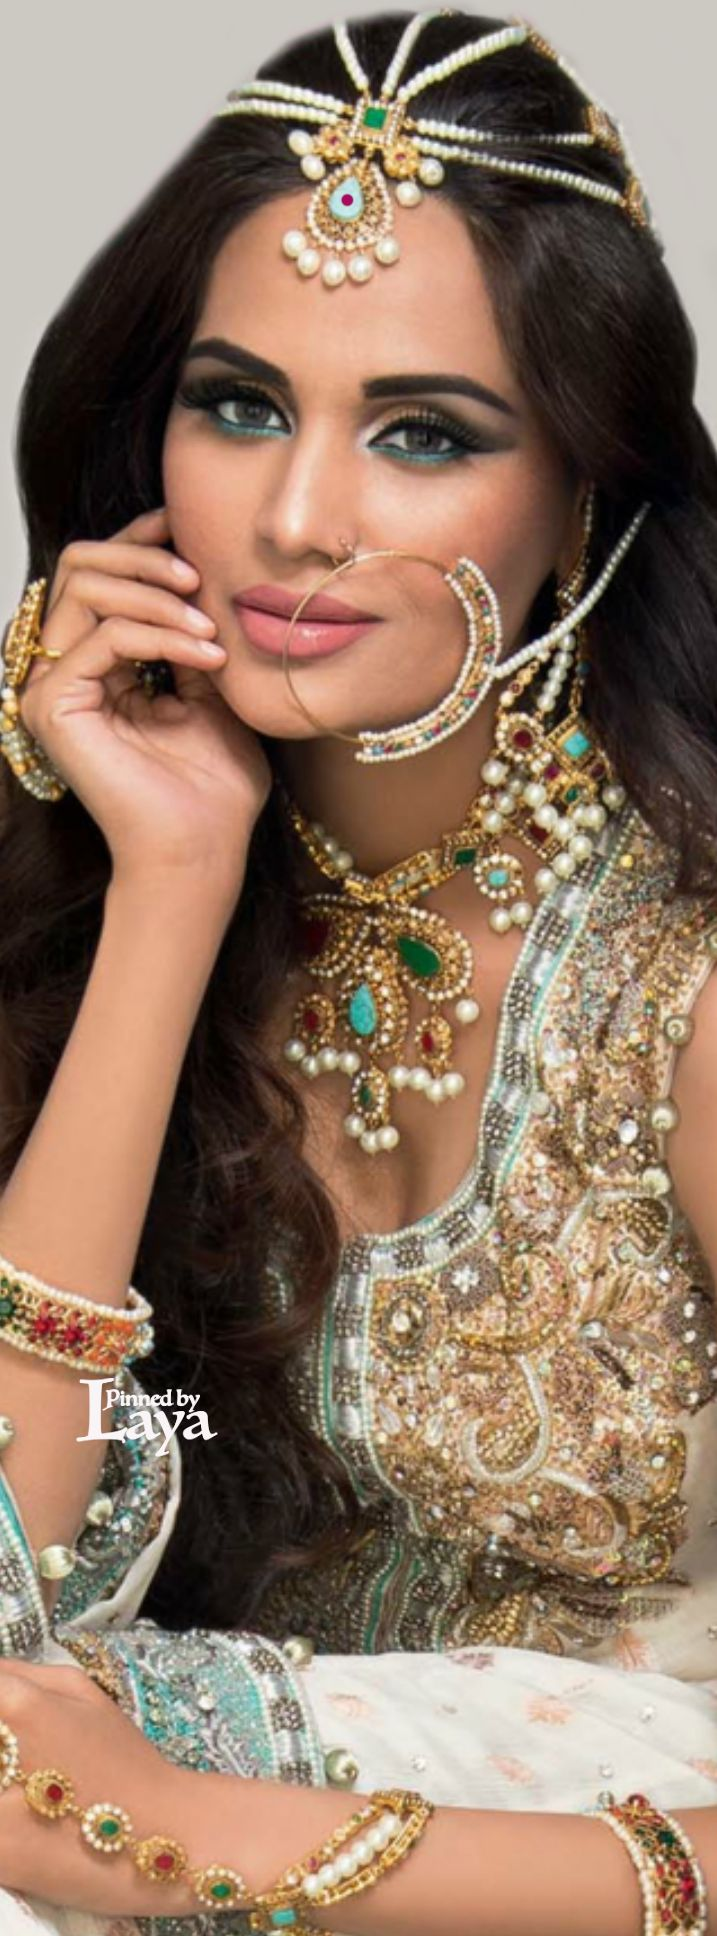 Jewels pinterest beautiful indian wedding jewellery and jewellery - Indian Bride Wearing Decorated Laung And Head Jewelry A Great South Asian Bridal Look